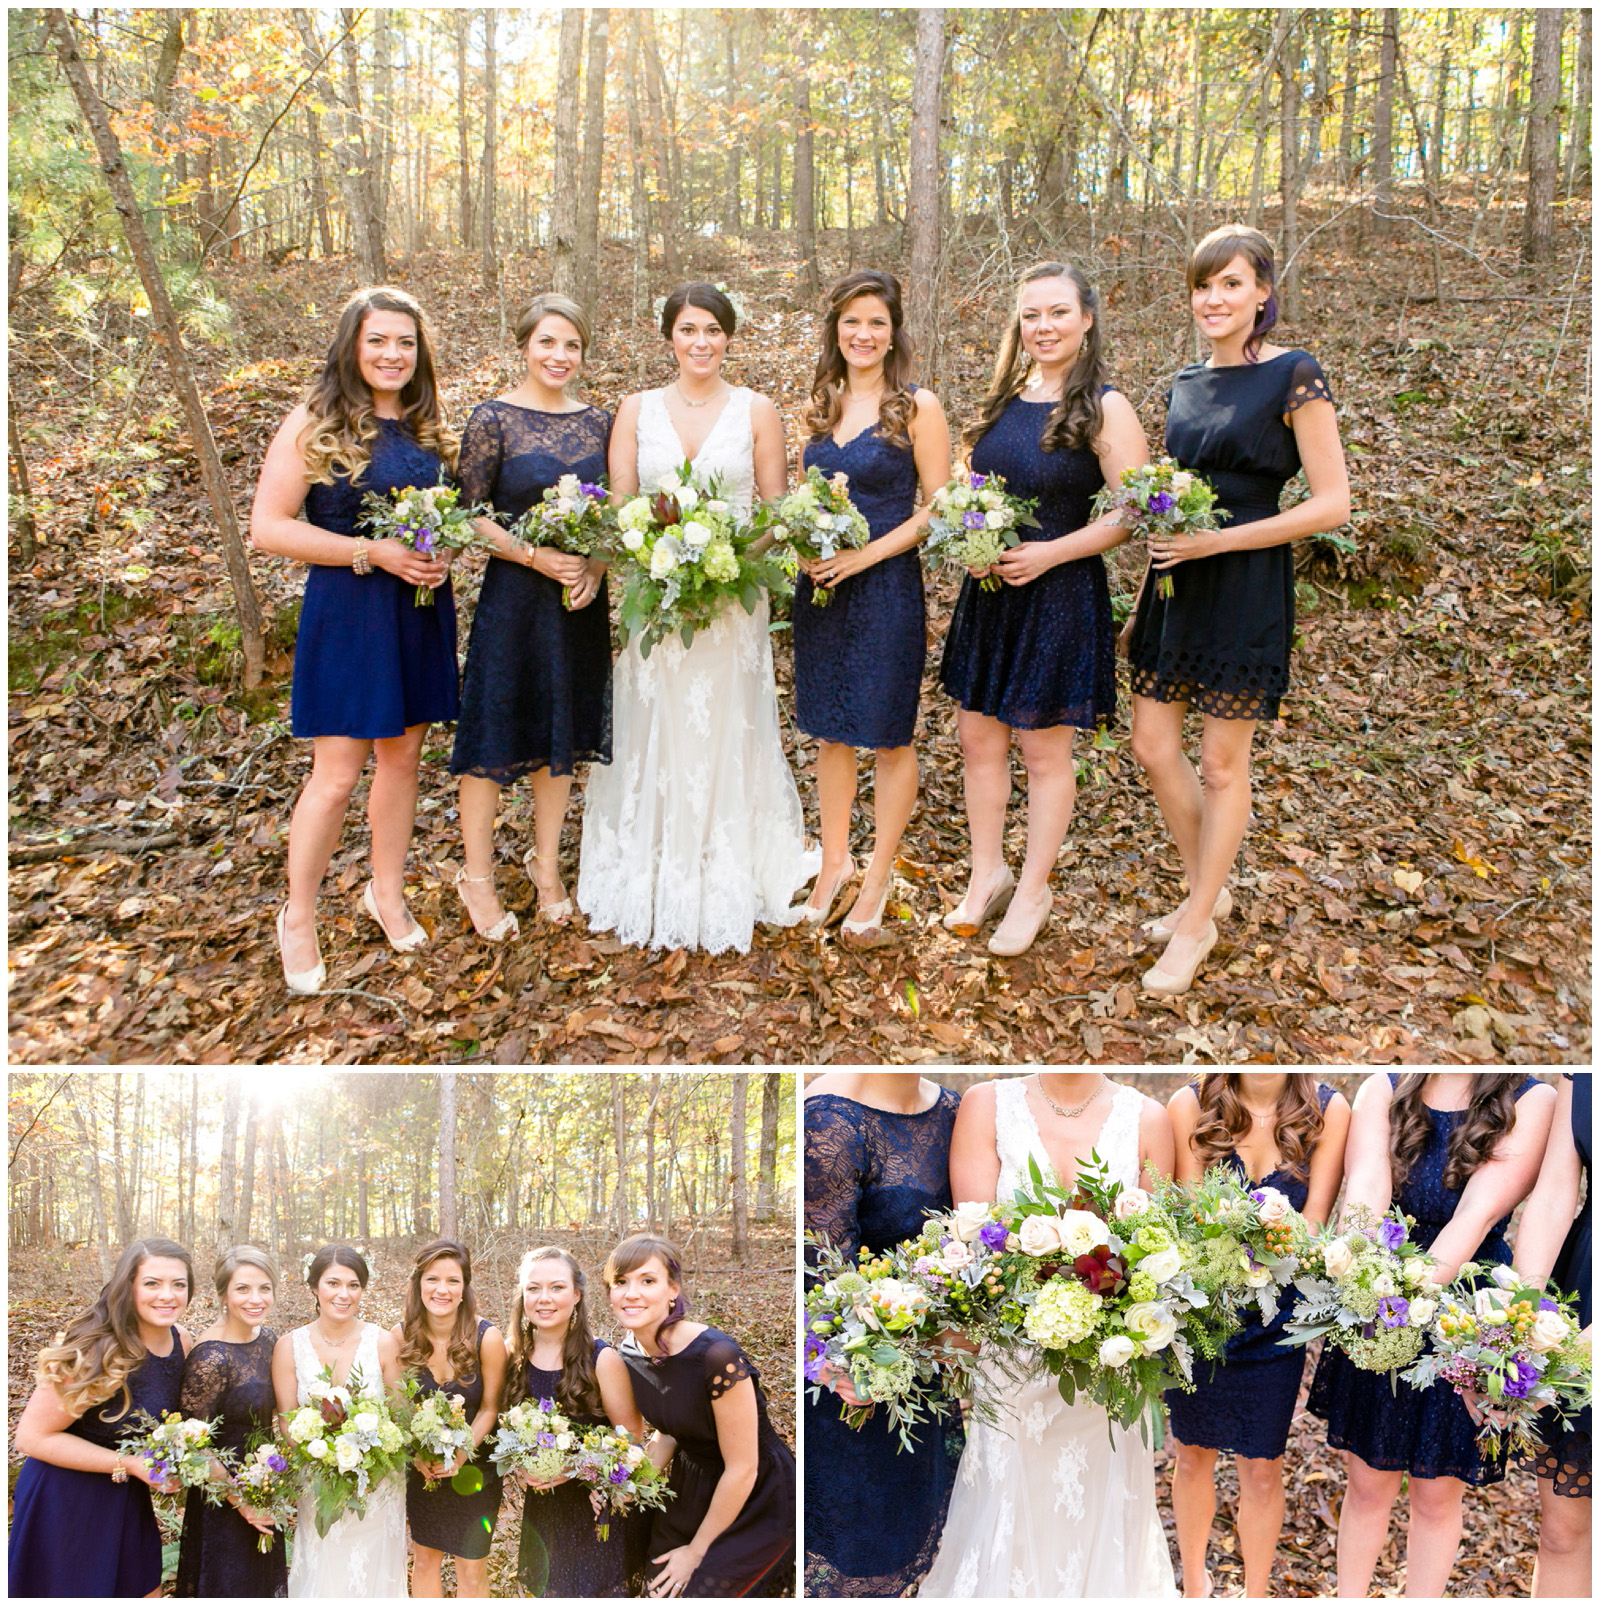 R&G_AtlantaWeddingPhotographer_WhiteOaksBarn_0018